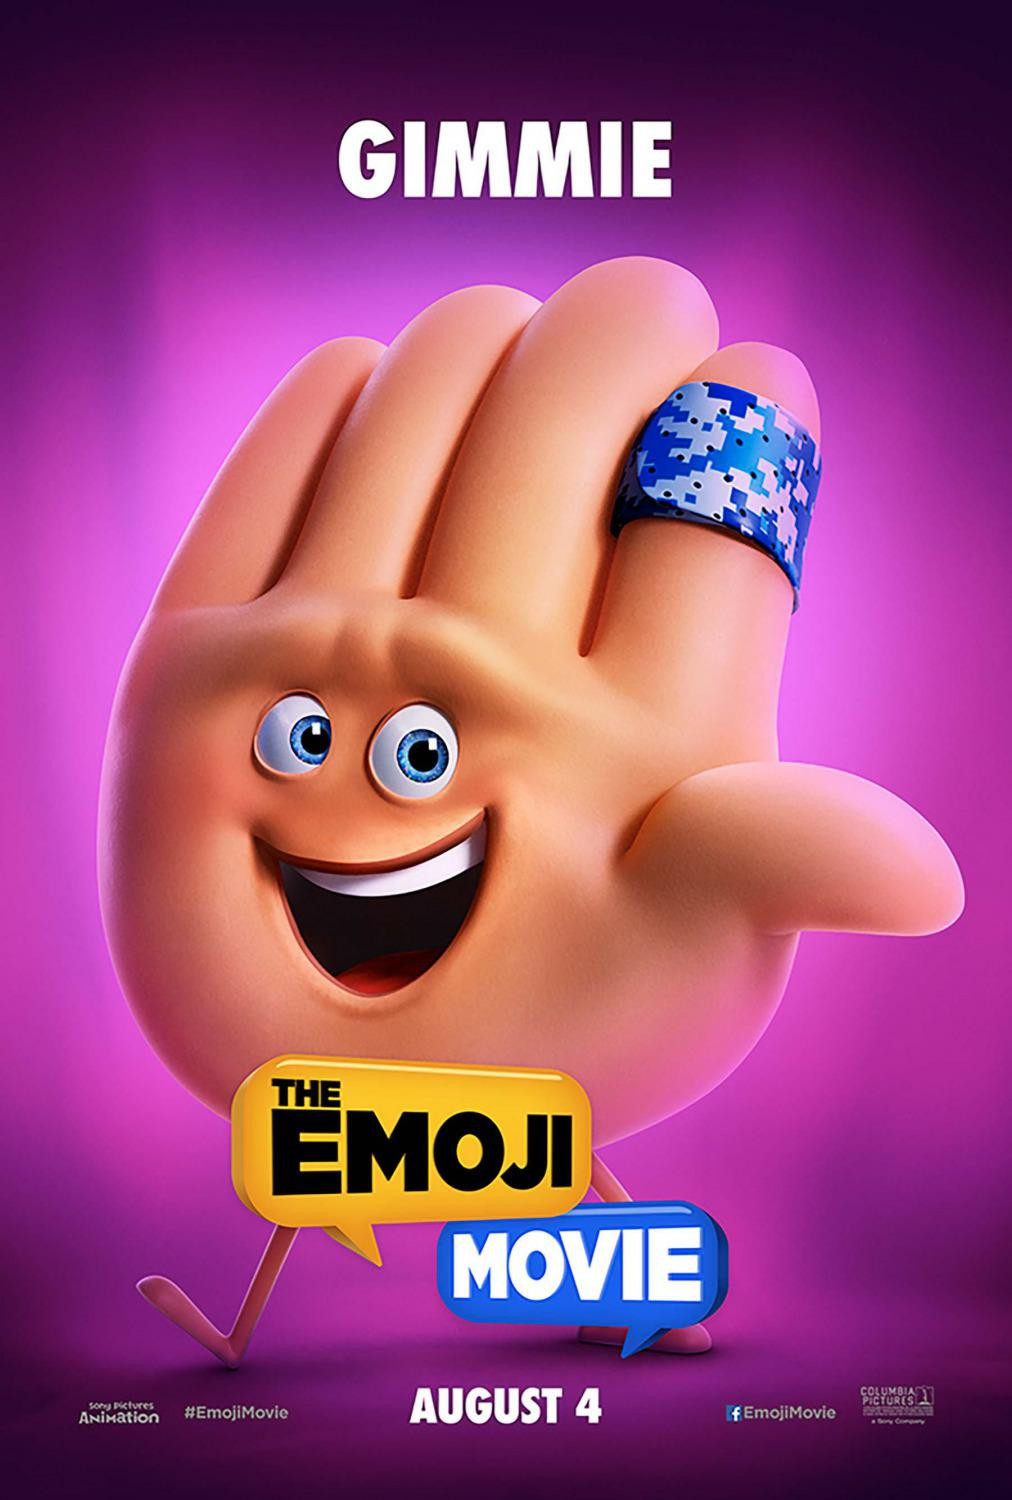 Emoji - Emoticon animated movie - Gimmie - give me five - poster